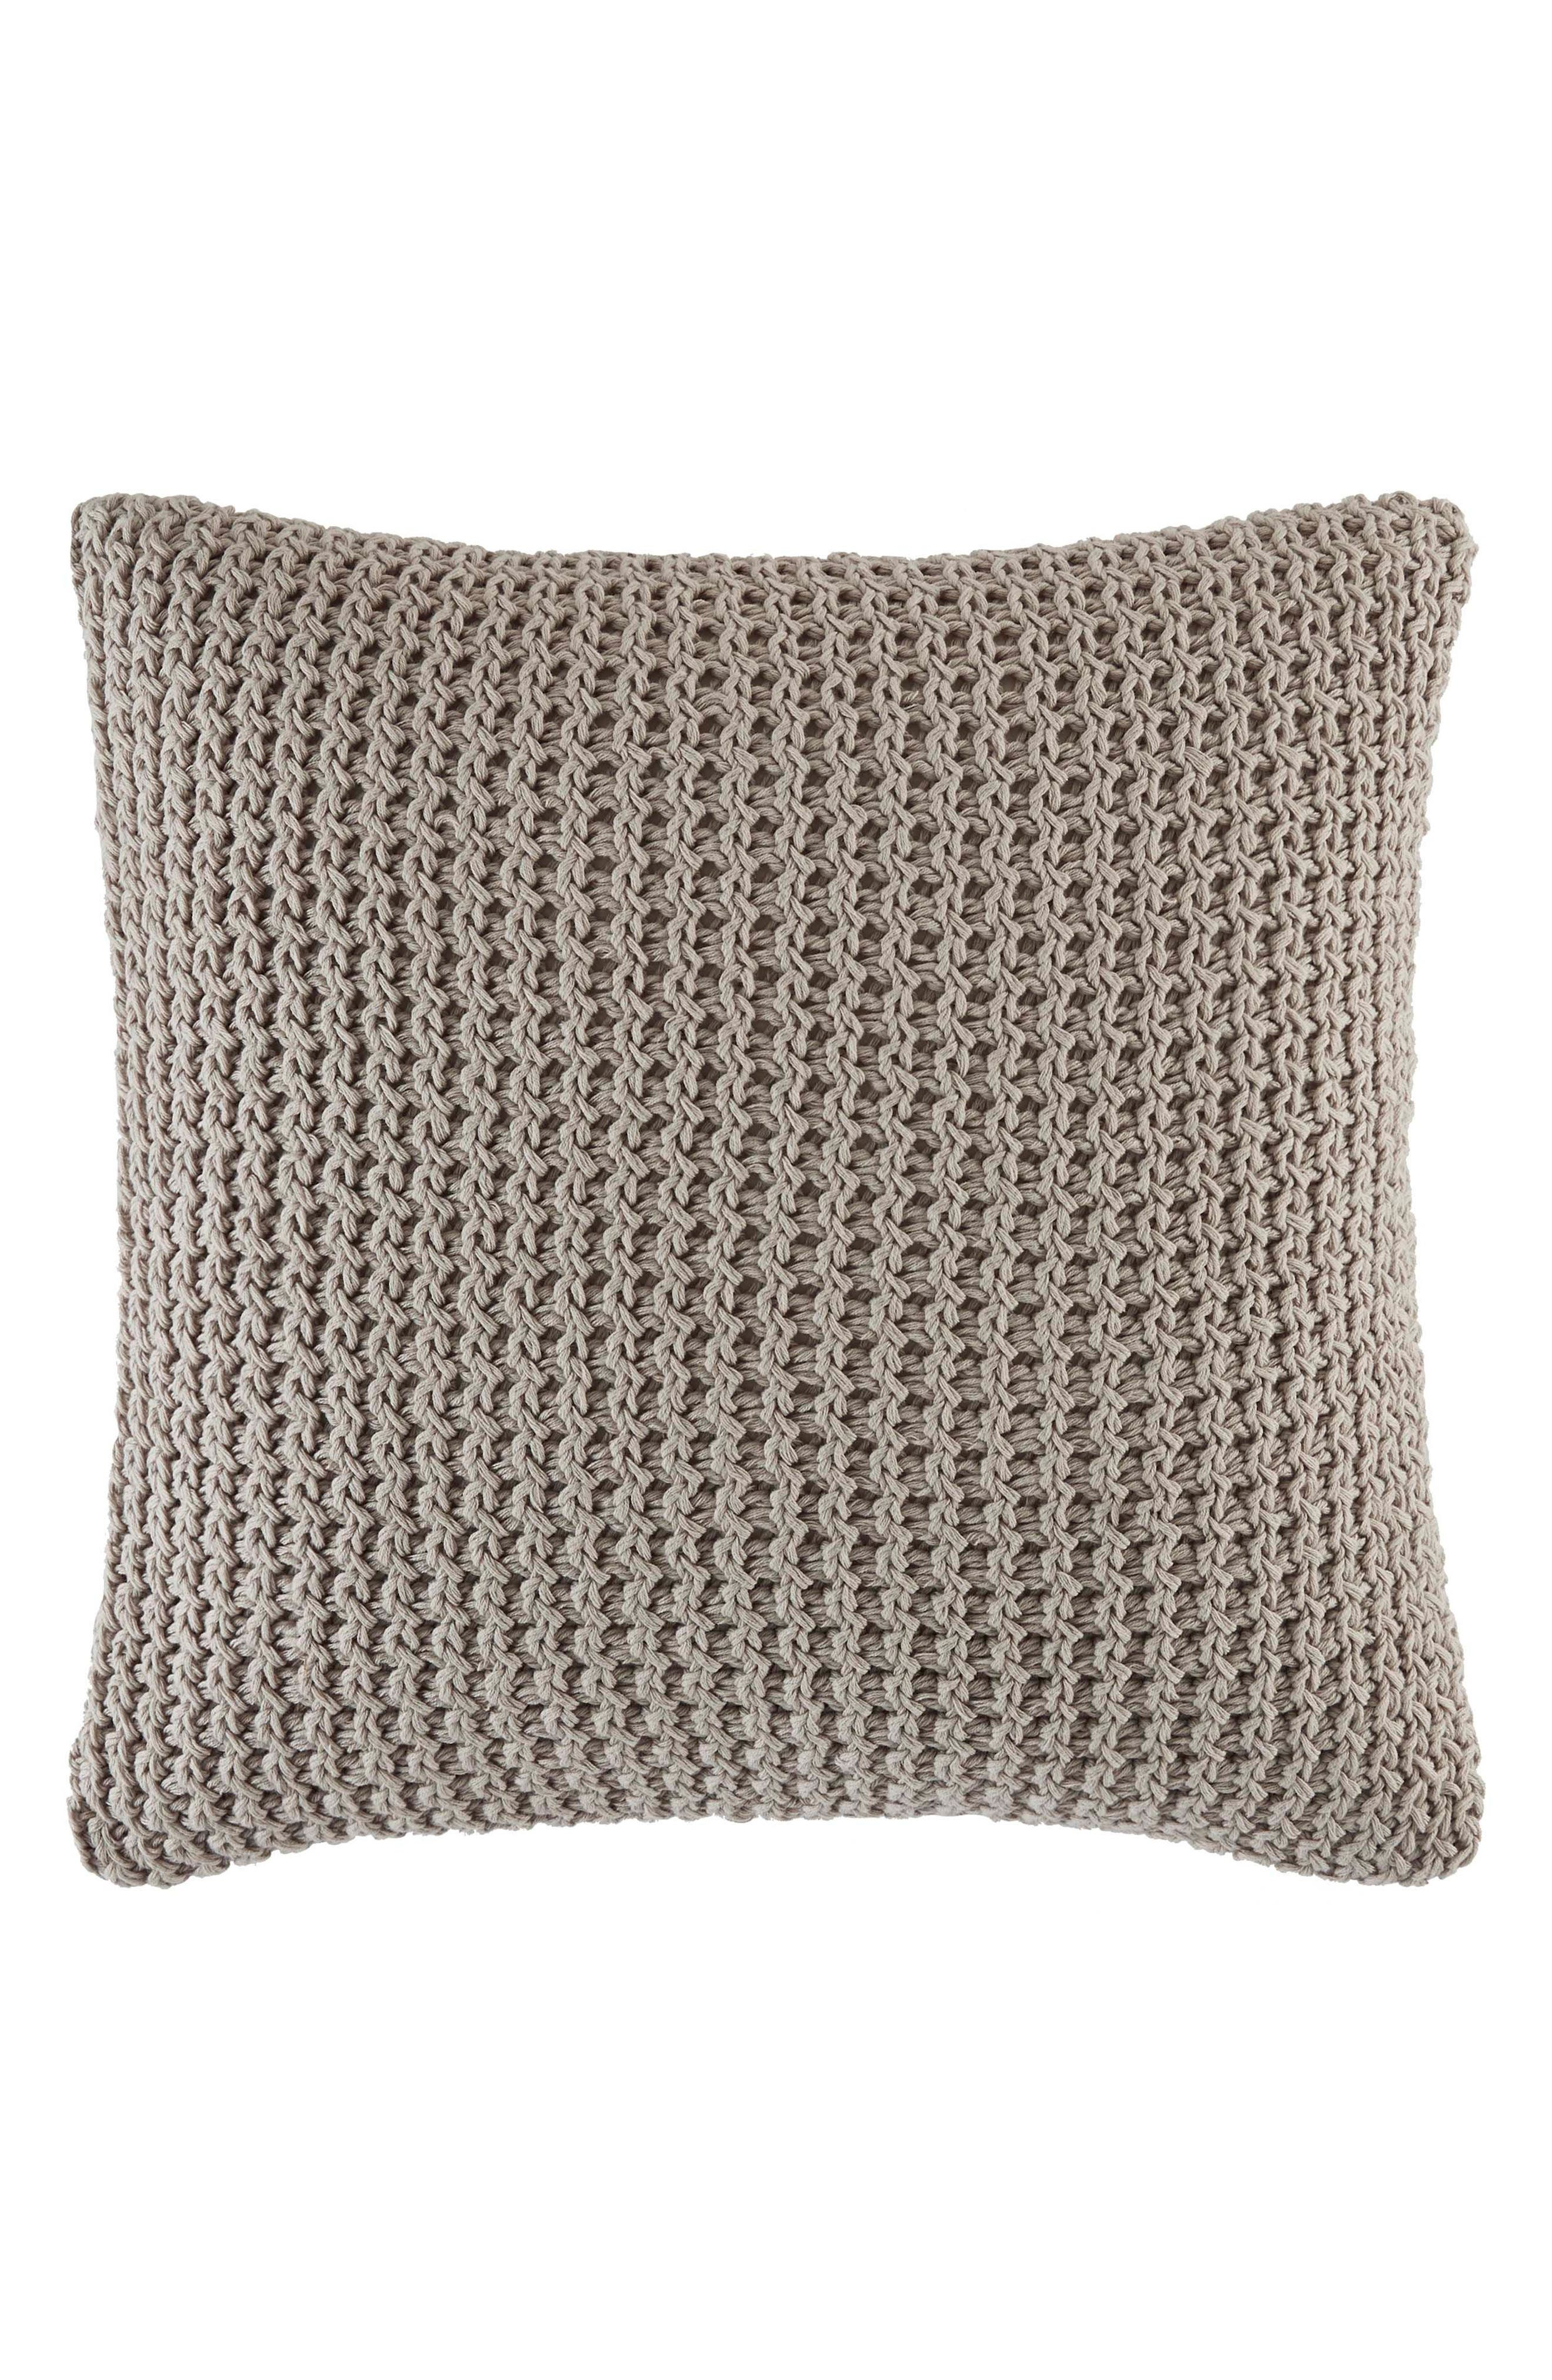 Knotted Pillow,                             Main thumbnail 1, color,                             Pastel Grey